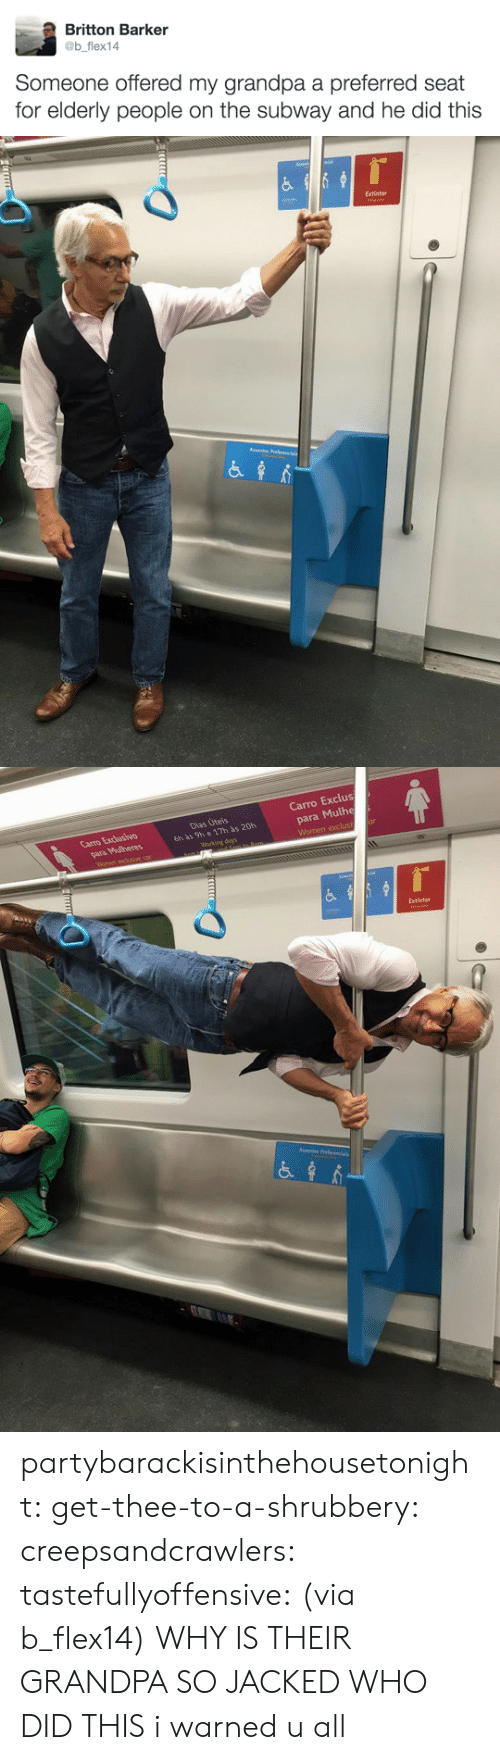 Subway, Tumblr, and Grandpa: Britton Barker  @b flex14  Someone offered my grandpa a preferred seat  for elderly people on the subway and he did this   Extintor   Carro Exclus  para Mulhe  Carro Excusivo  Dias Úteis  6h às 9h e 17h às 20h  Extintor partybarackisinthehousetonight: get-thee-to-a-shrubbery:  creepsandcrawlers:  tastefullyoffensive:  (via b_flex14)  WHY IS THEIR GRANDPA SO JACKED WHO DID THIS    i warned u all